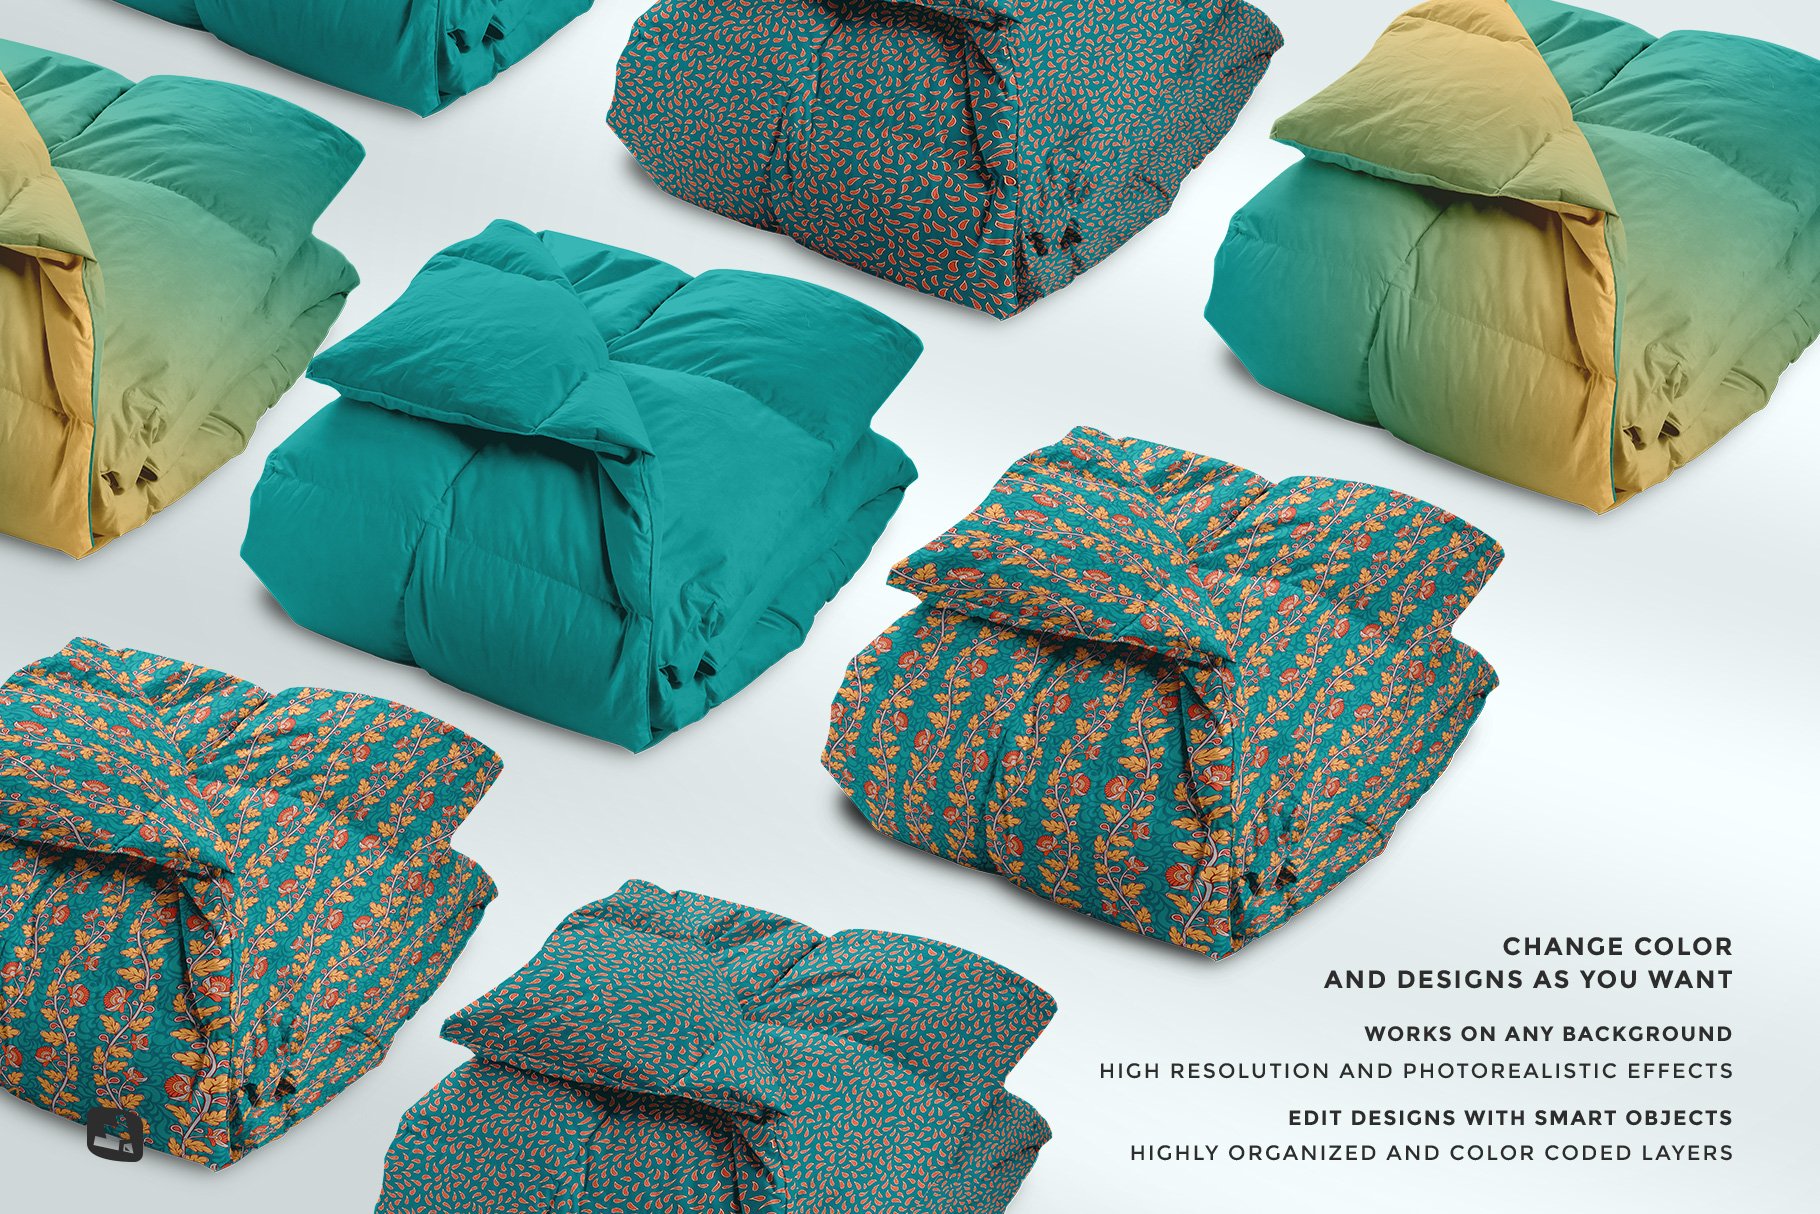 features of the folded comforter blanket mockup